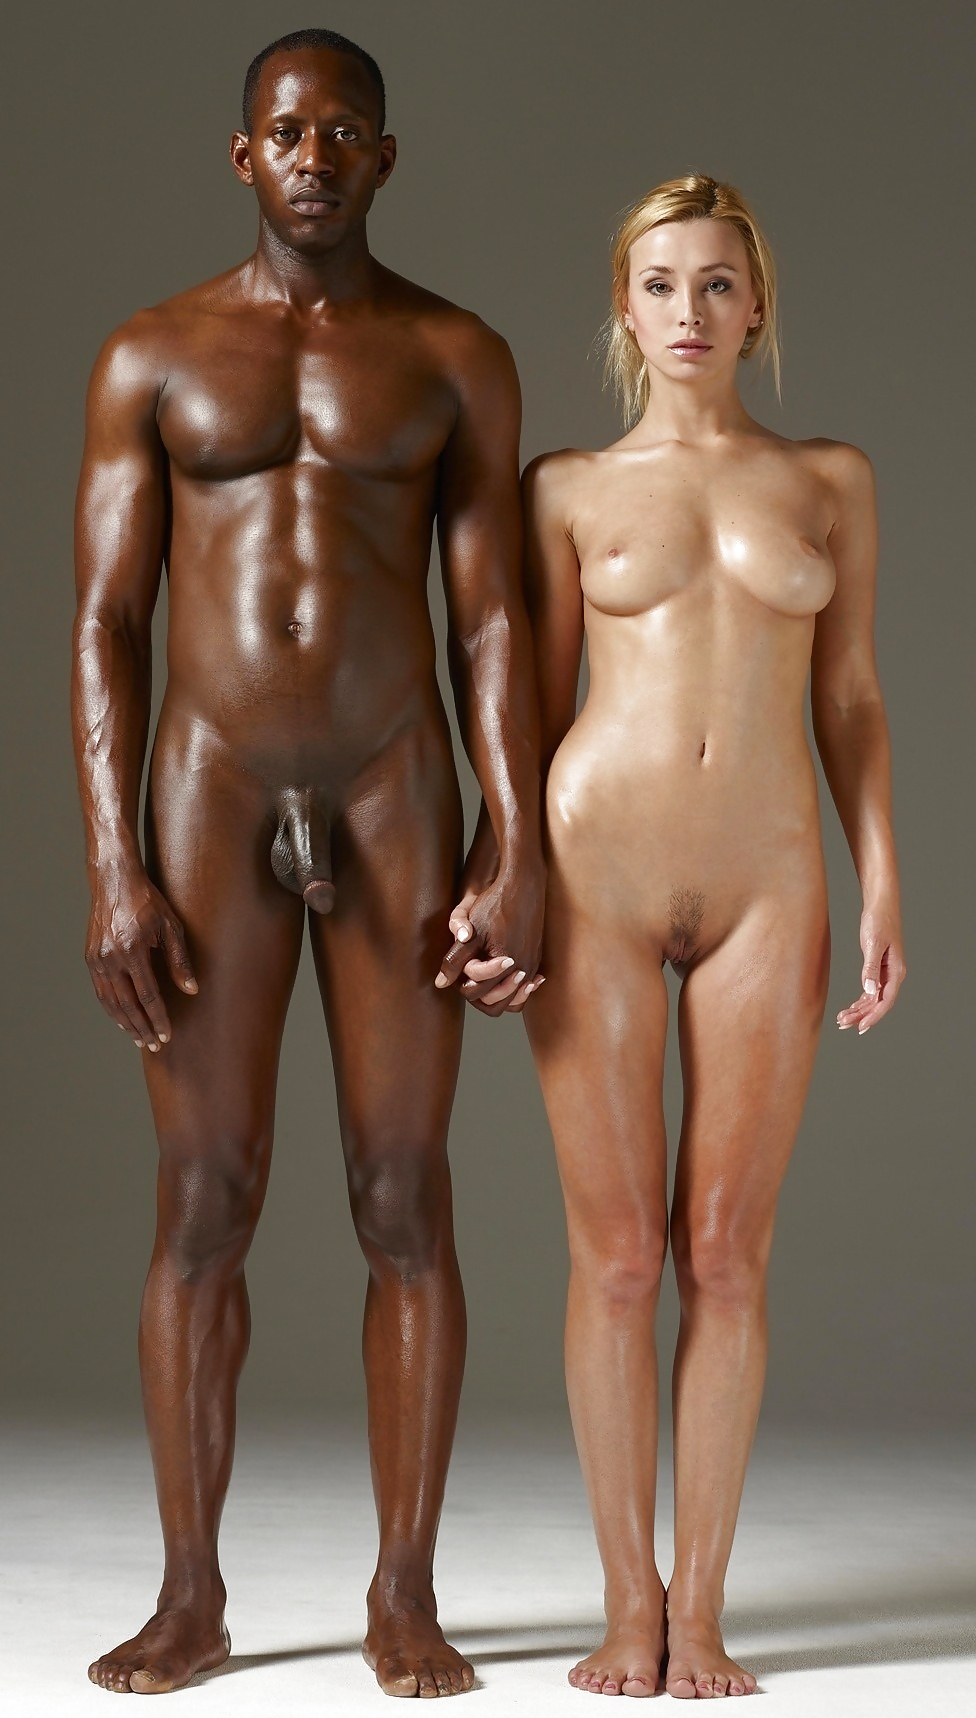 Couples Standing Naked Together - 217 Pics - Xhamstercom-3586